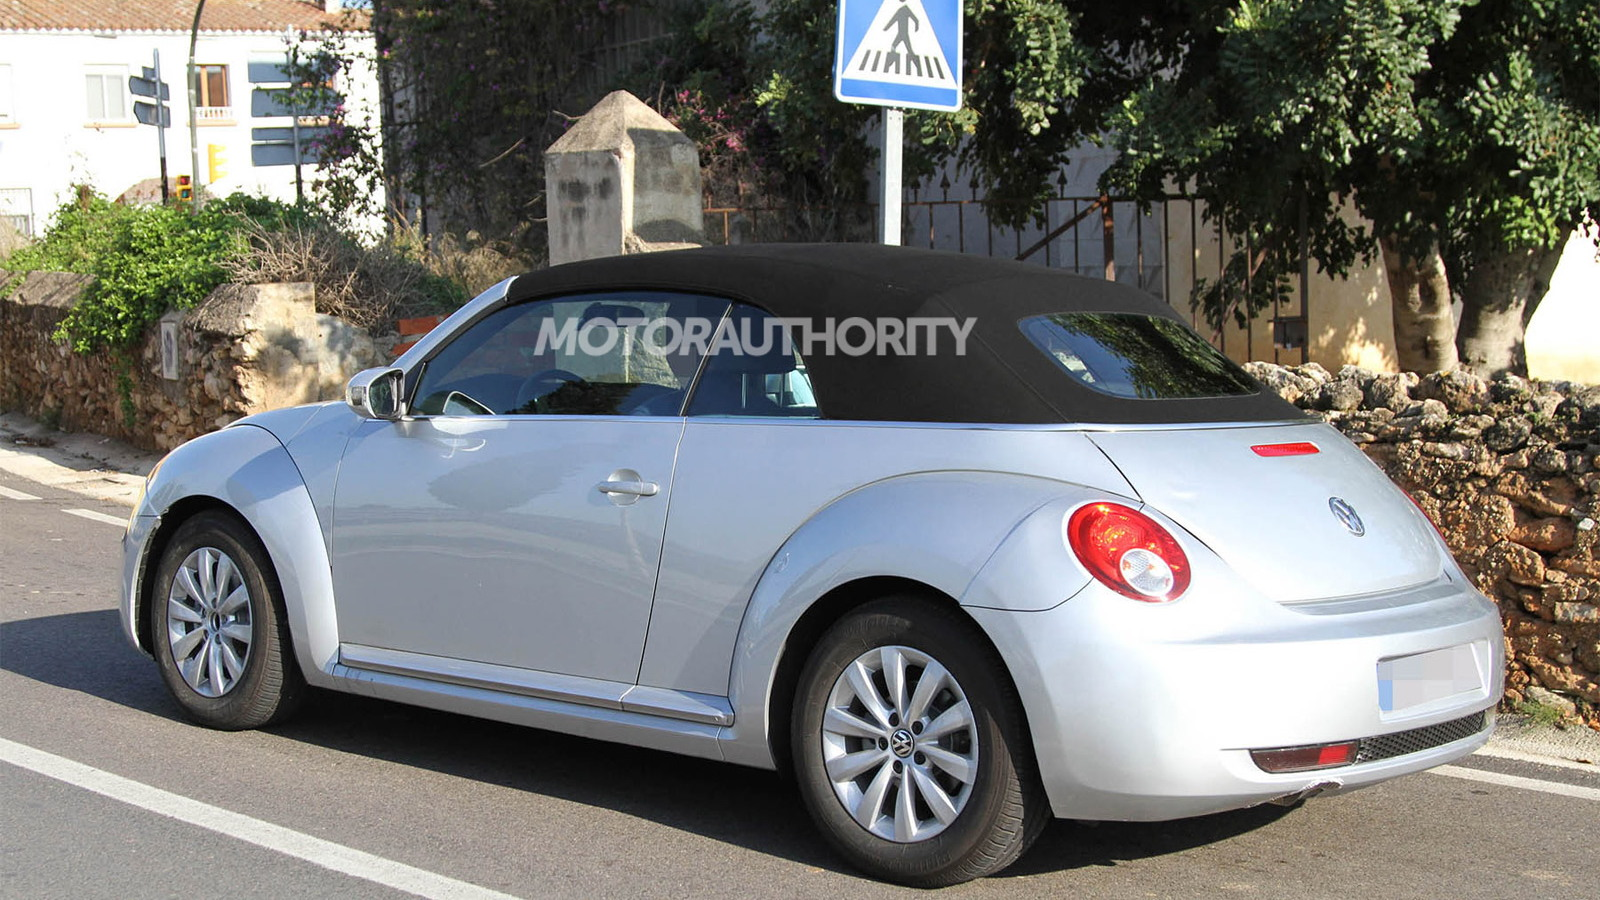 2013 Volkswagen Beetle Convertible spy shots